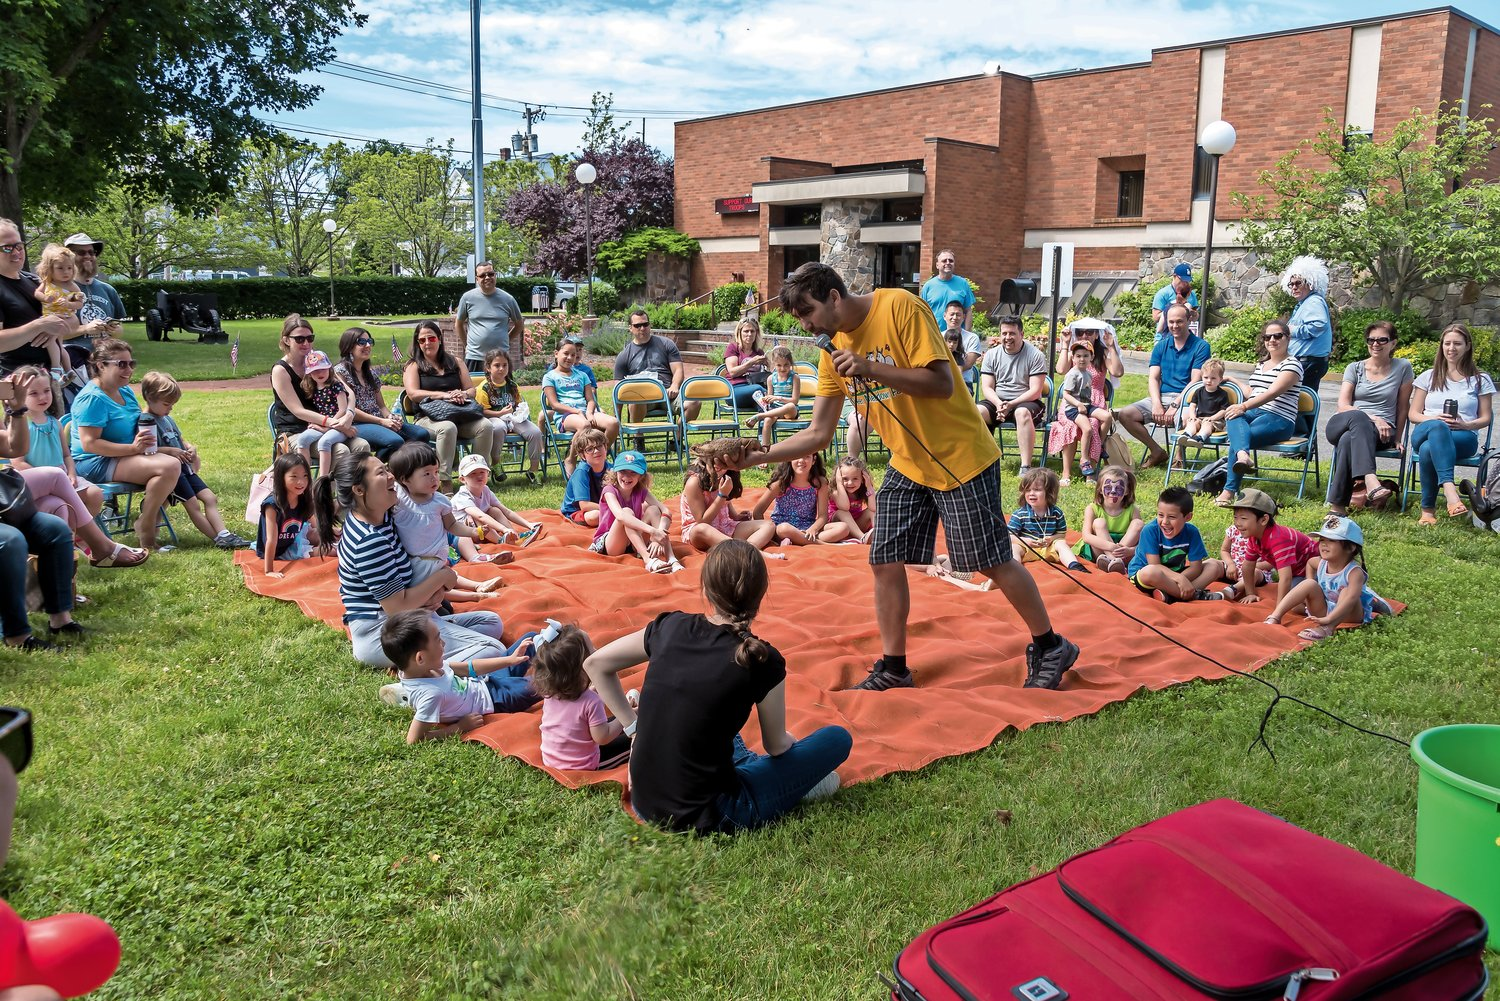 Jason Reilly from Green Meadows Farm entertained a crowd of residents at the Gold Coast Library's summer reading kick-off celebration on June 15.